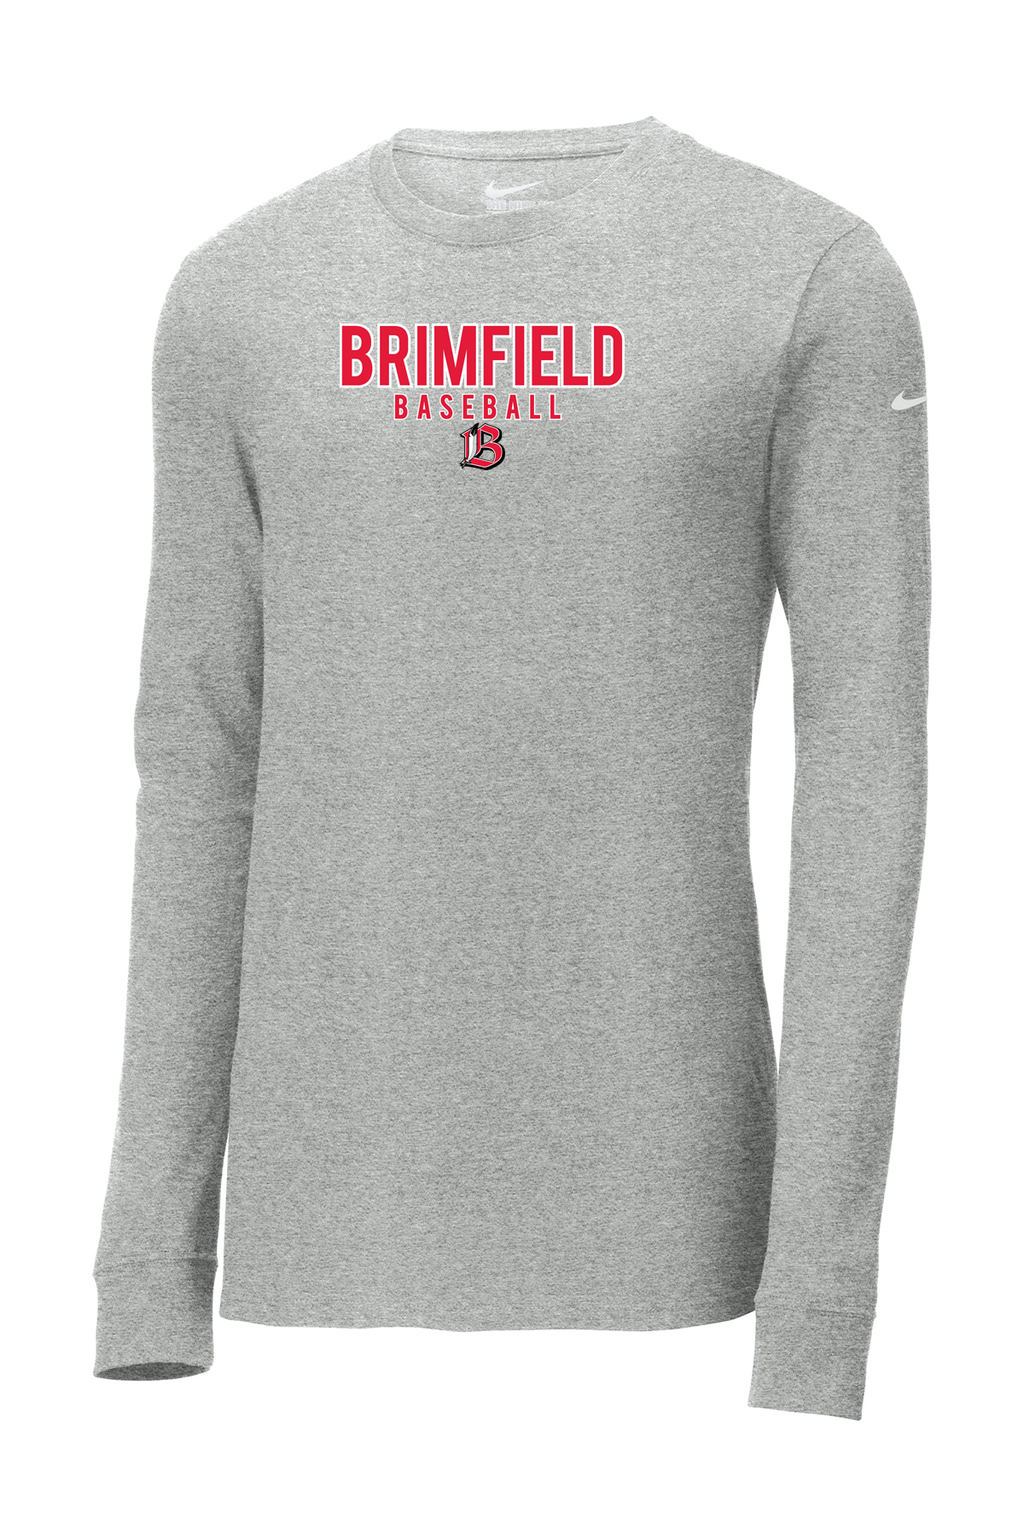 Brimfield Baseball Nike Core Cotton Long Sleeve Tee